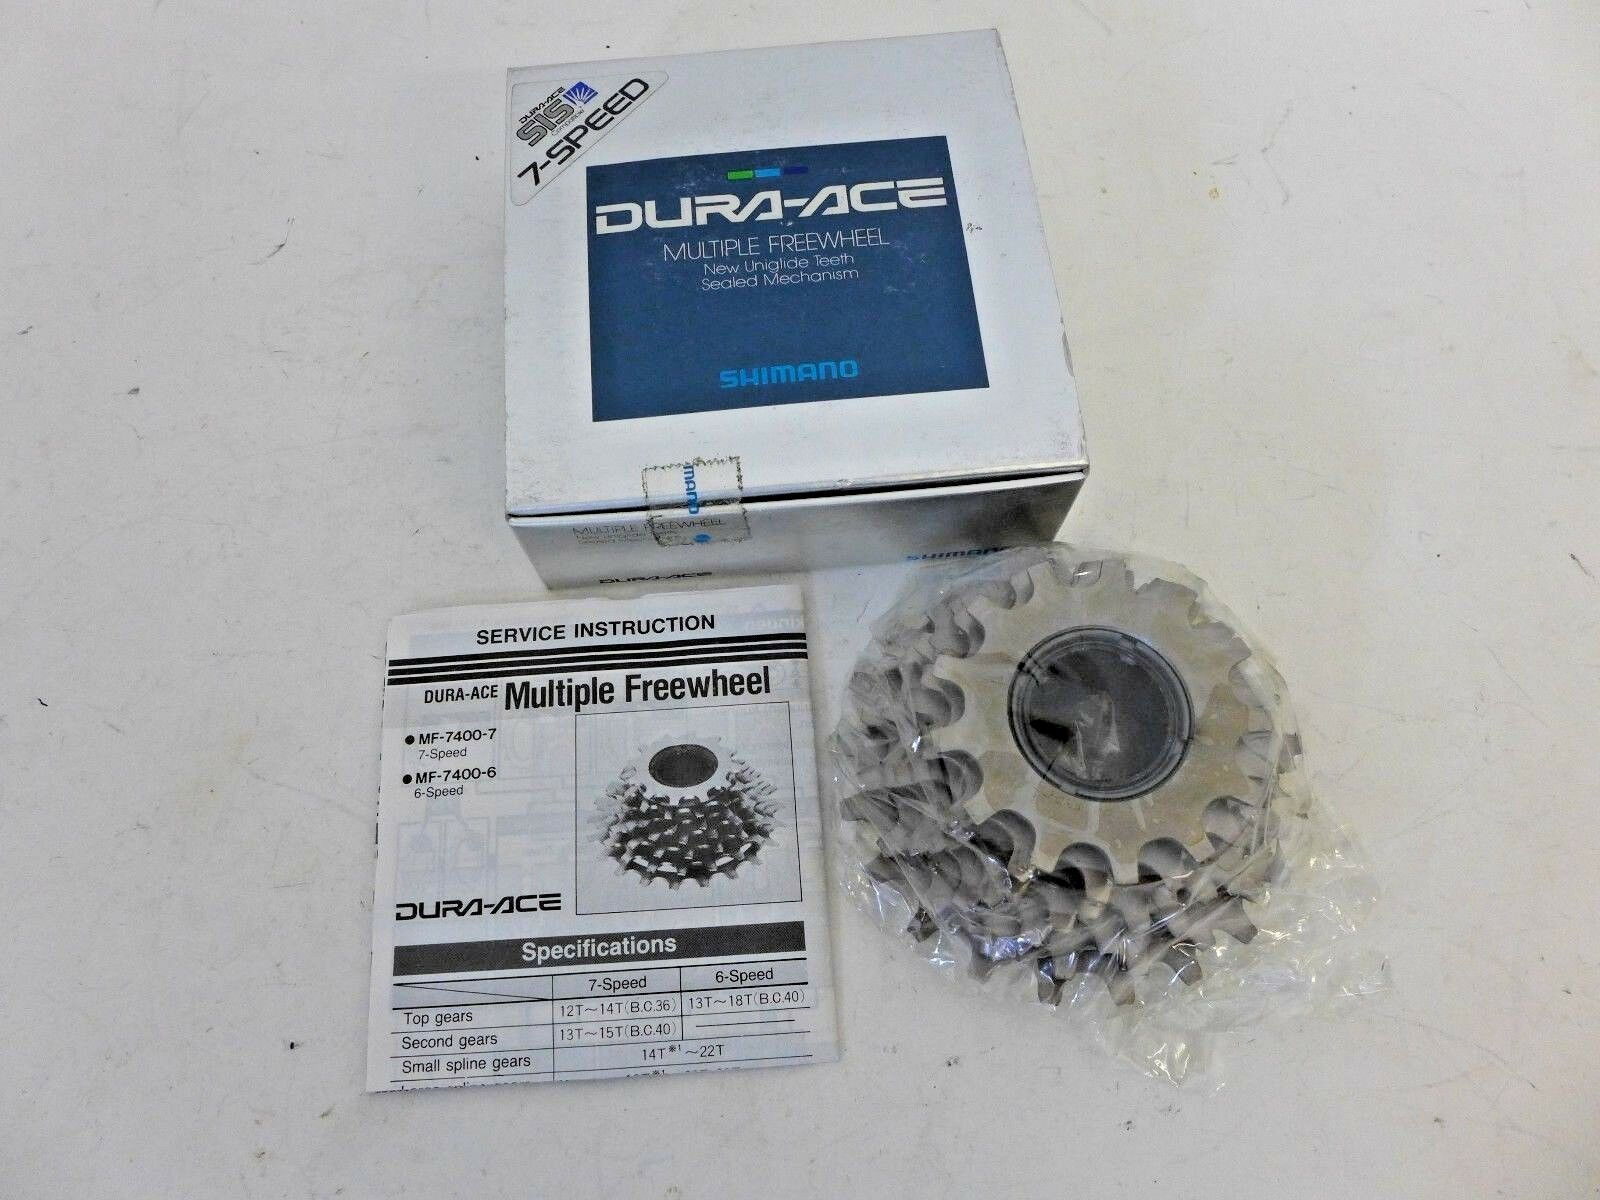 Shimano DuraAce  7sp 13-21 freewheel  new in box, uniglide 7400 SIS compatible  for your style of play at the cheapest prices